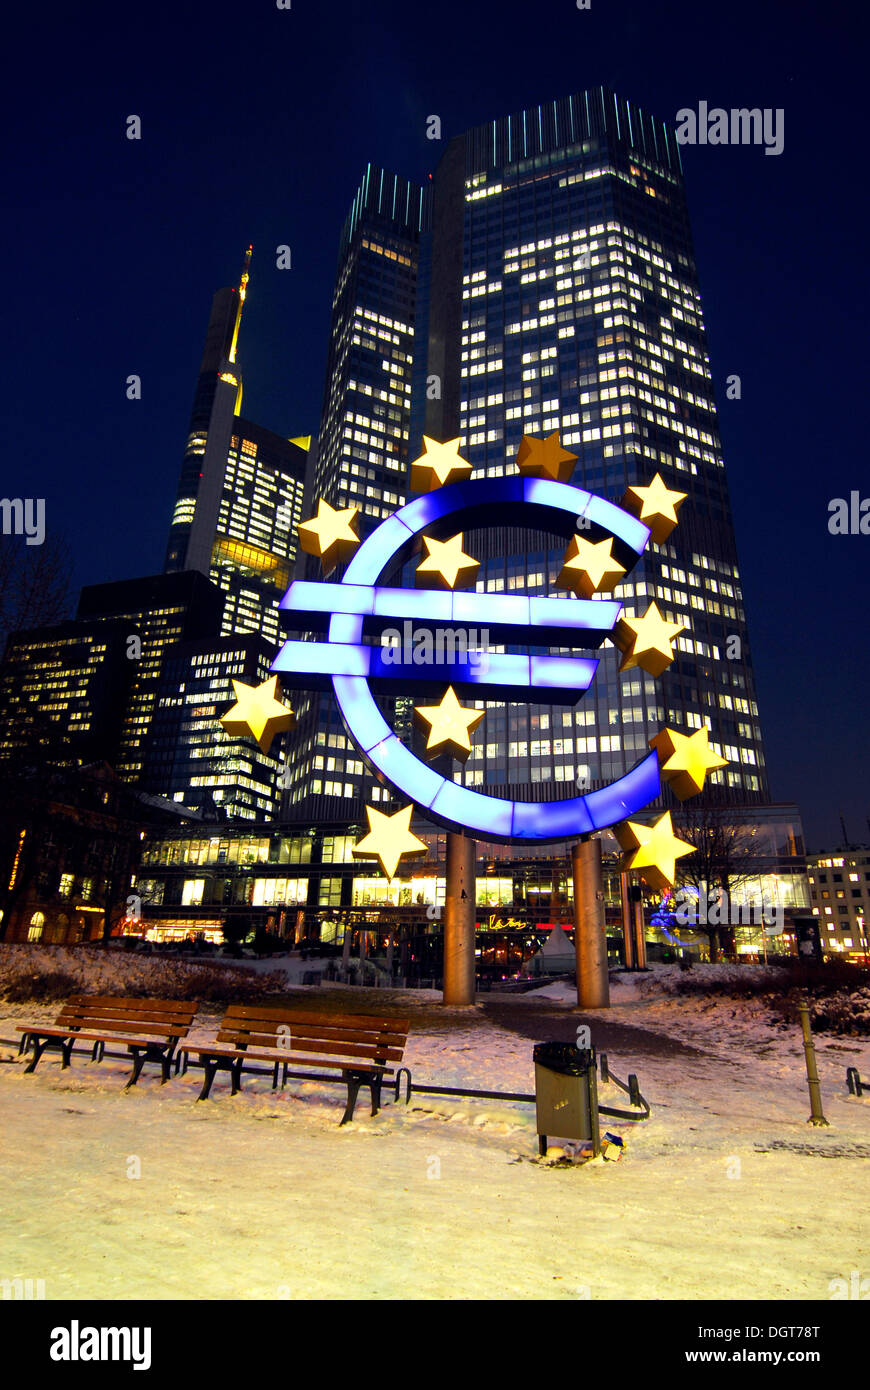 Euro sculpture symbol of the european currency ecb european stock euro sculpture symbol of the european currency ecb european central bank in the evening snowy willy brandt platz square biocorpaavc Images